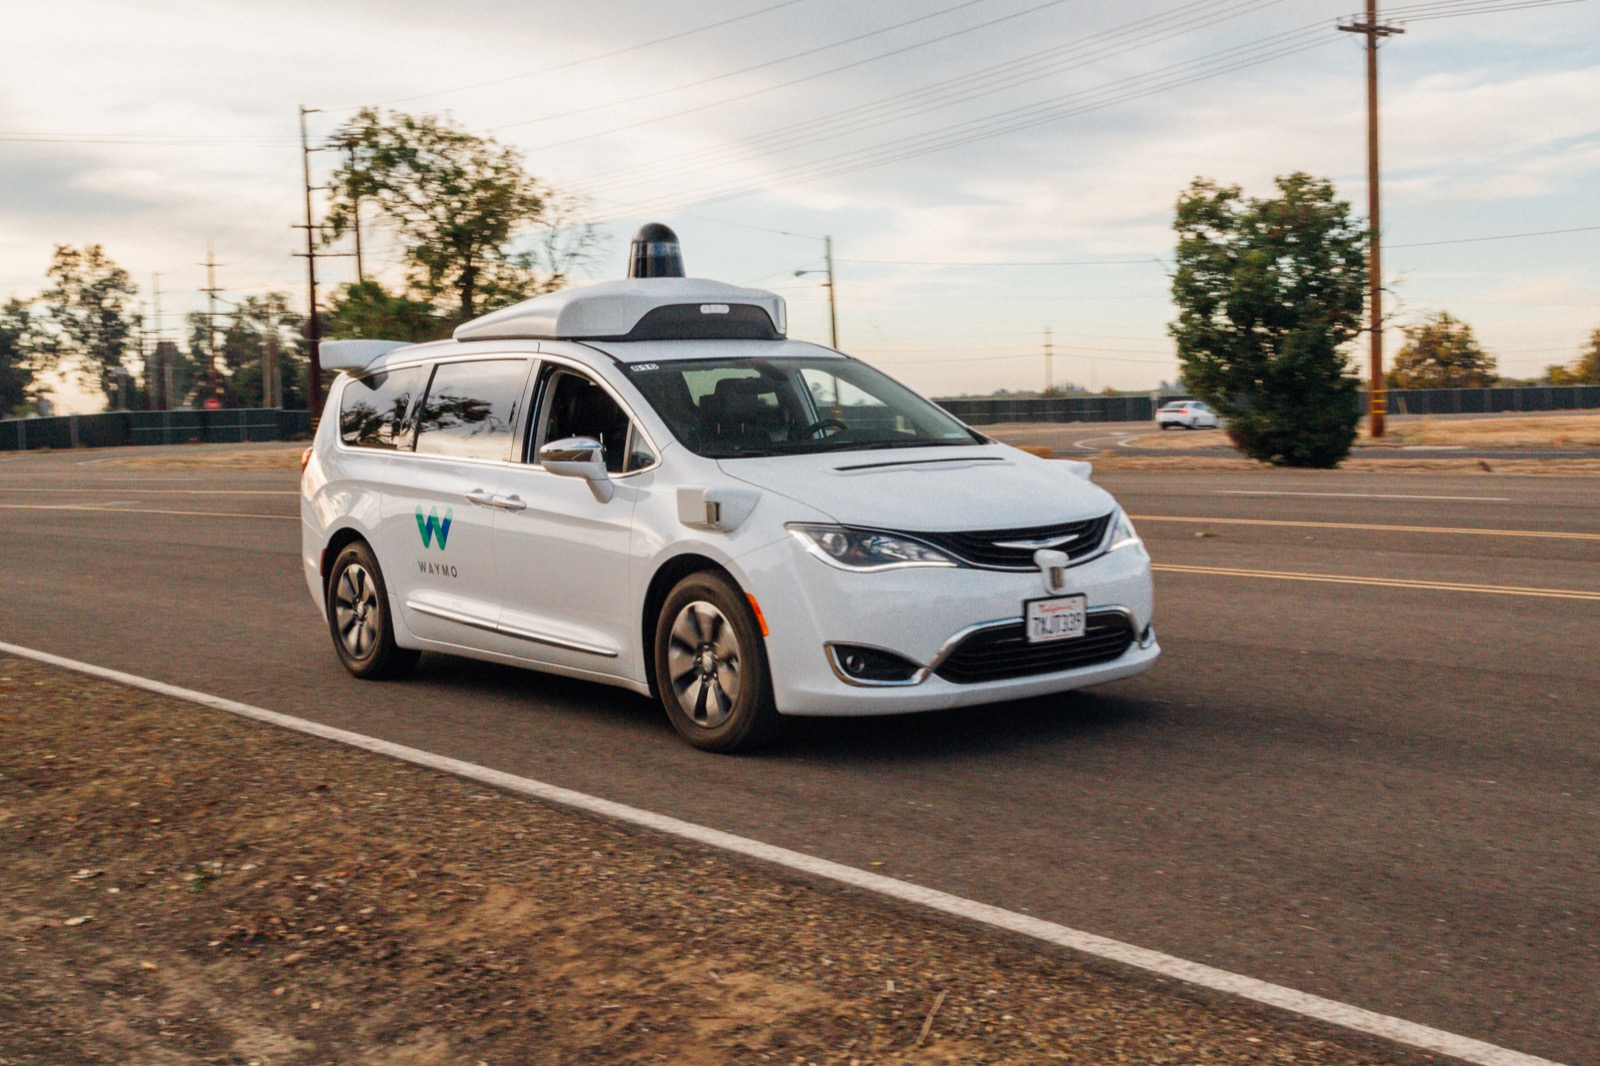 Waymo teams with Trov on passenger insurance for self-driving service